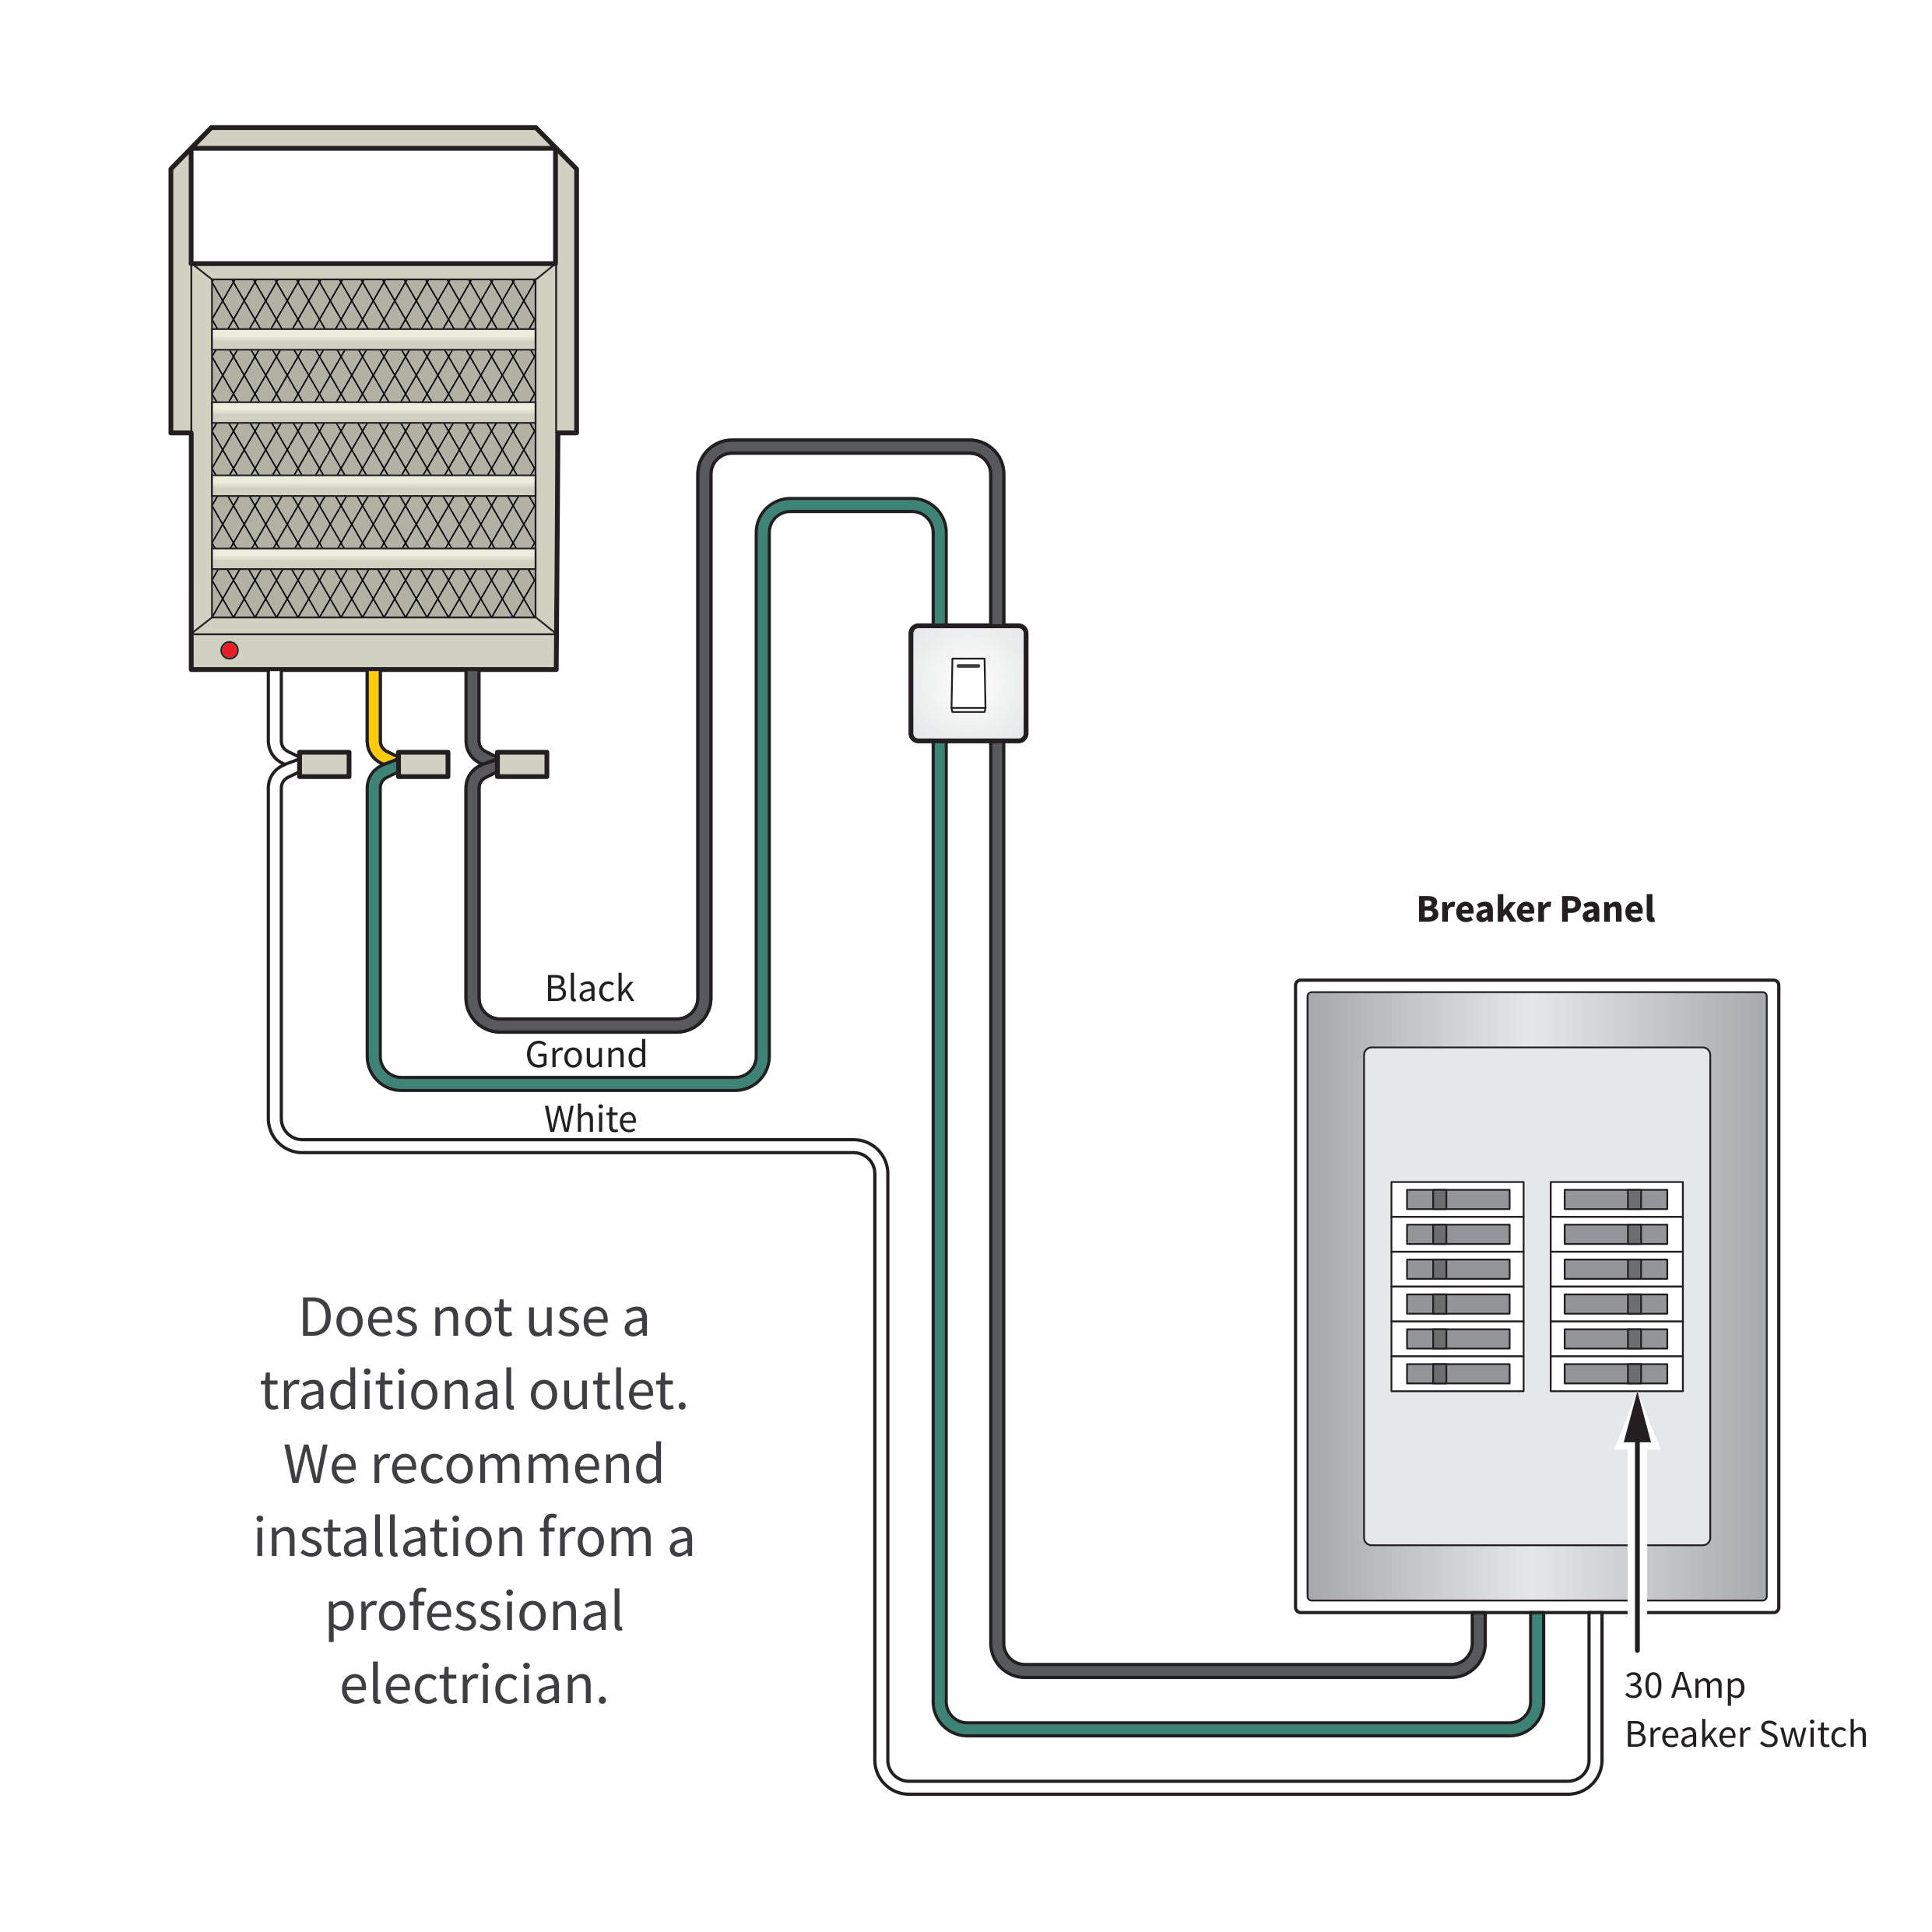 Modine Heater Wiring Diagram from cdn.shopify.com